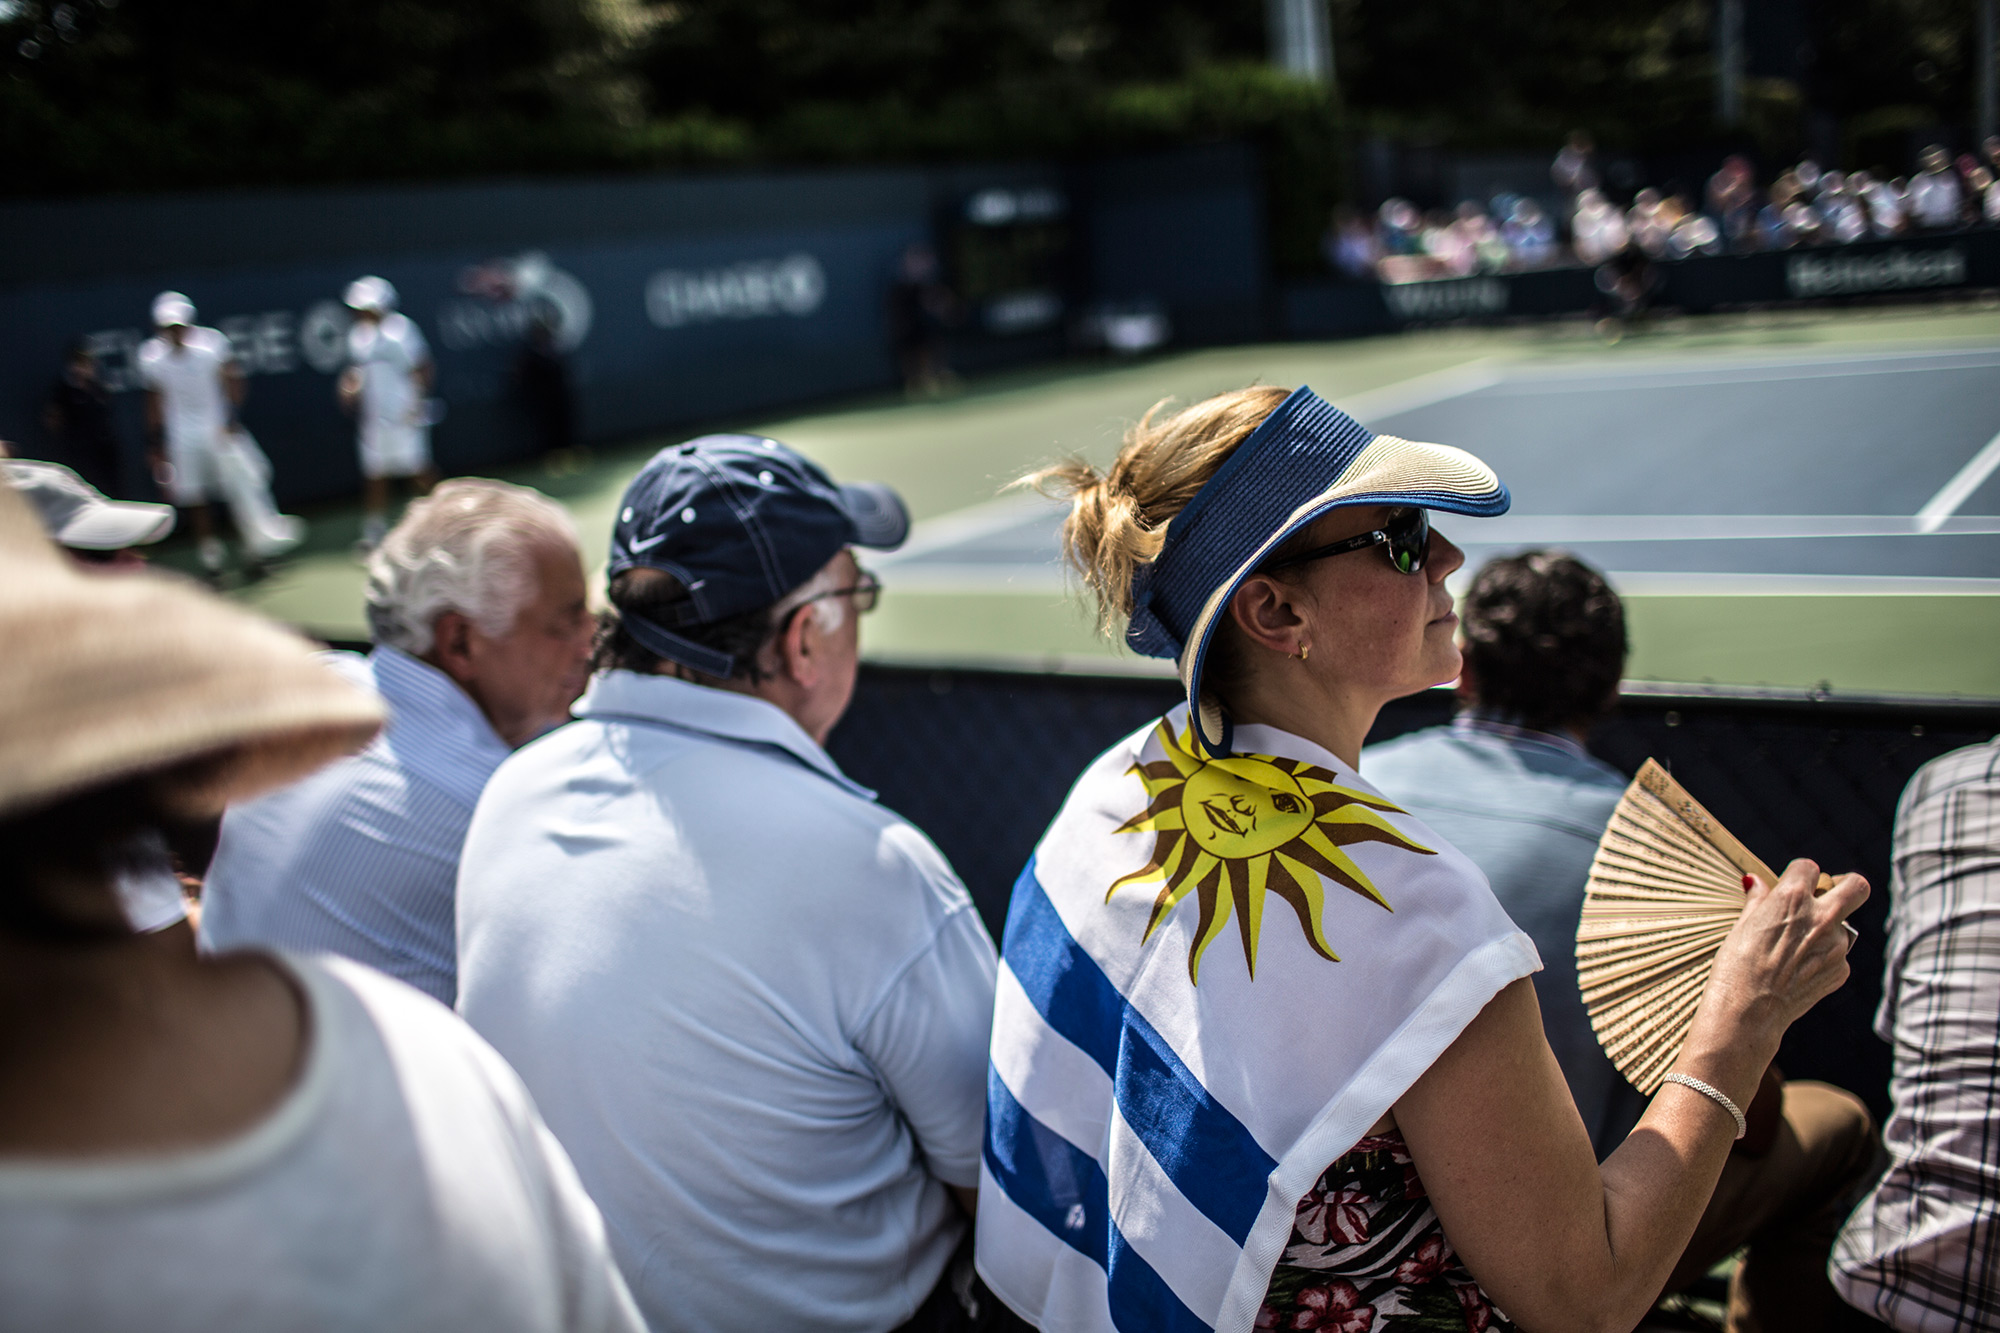 The all-South American clash drew a small but passionate crowd. While outnumbered both on and off the court, the Uruguayan fans made sure their presence was felt with flags and cheers.